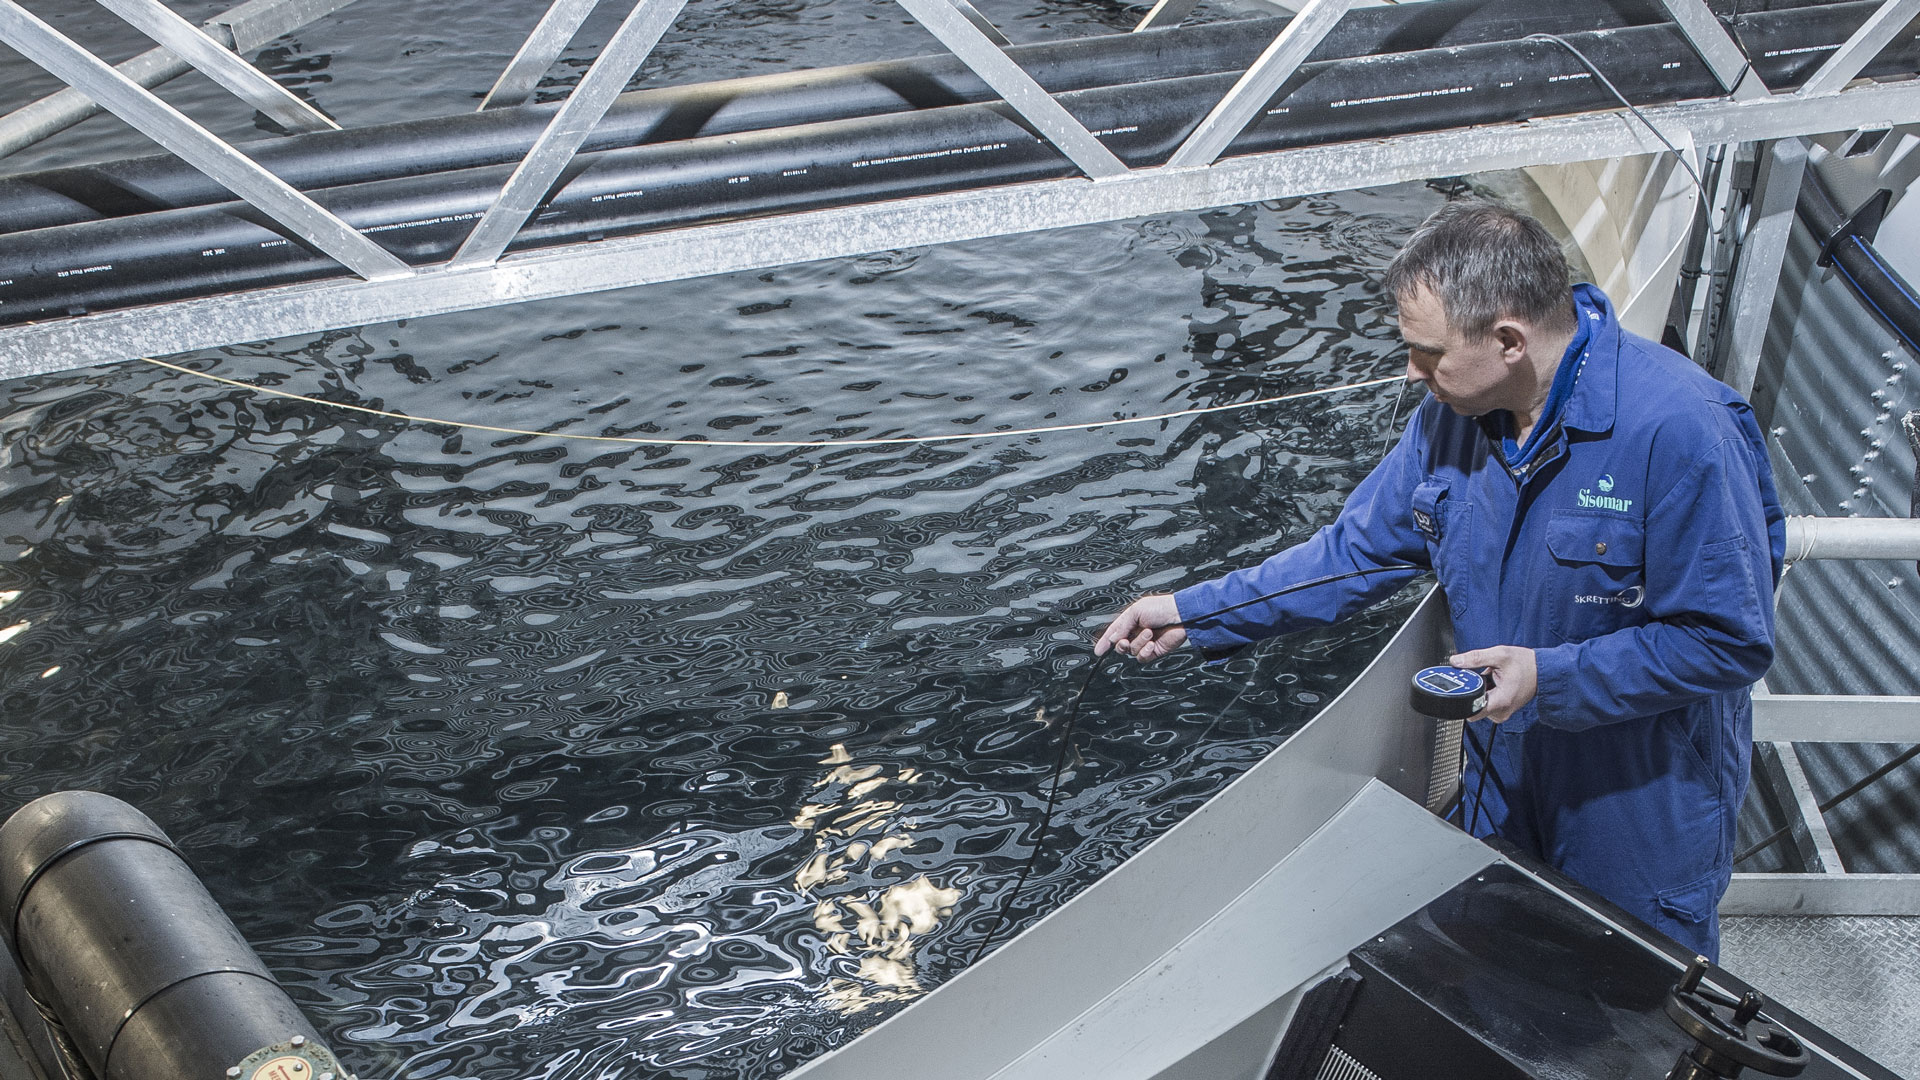 Both Sisomar and AKVA group values the importance of developing technolgical solutions based upon the fish welfare.